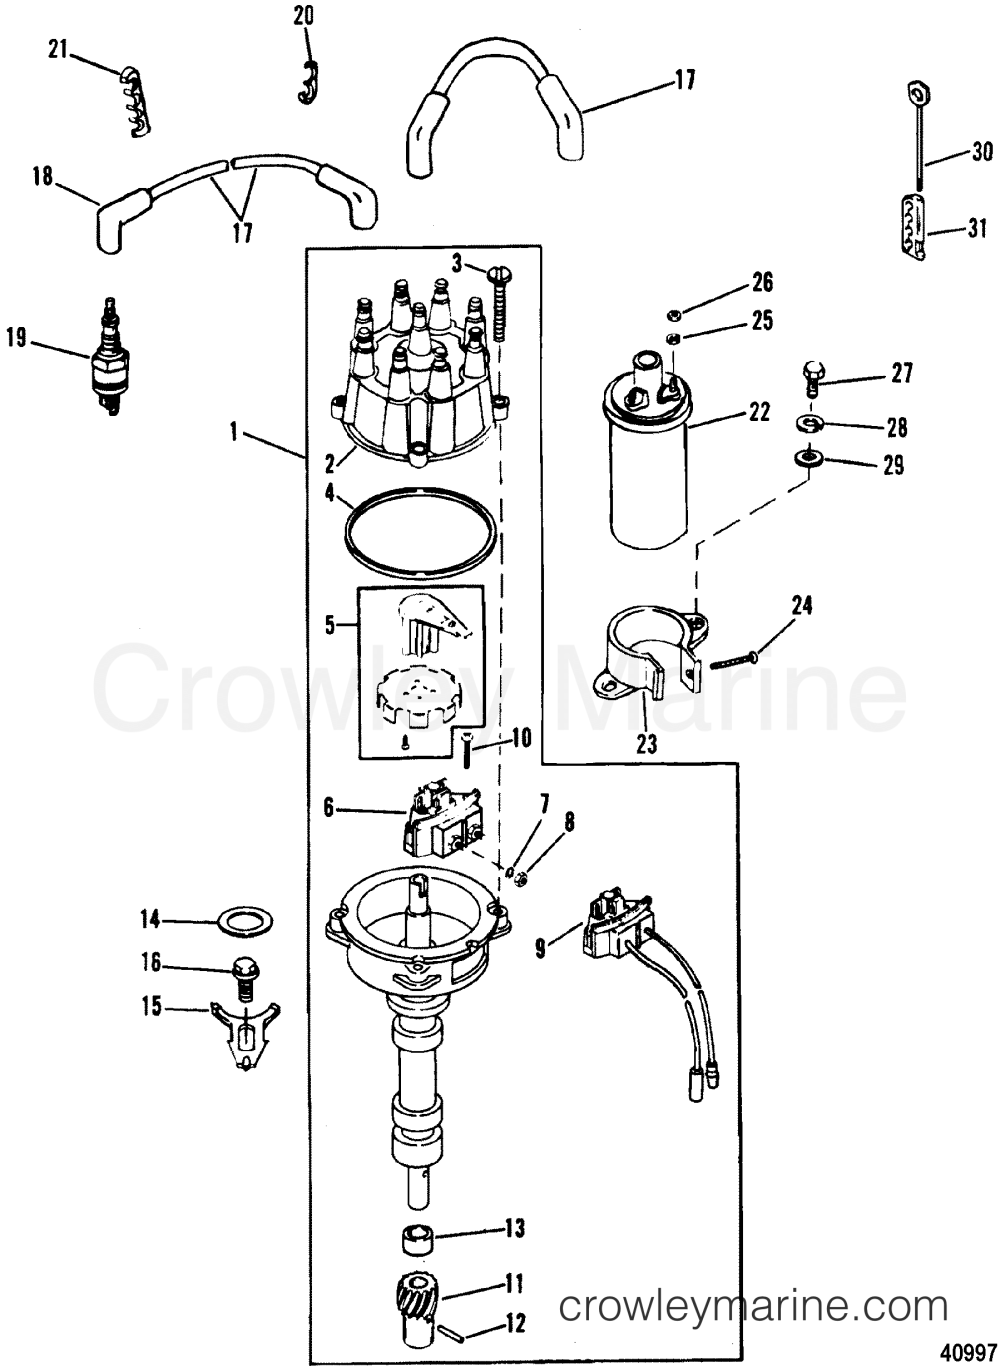 medium resolution of 1988 mercury inboard engine 5 7l ski 3570111as distributor ignition components